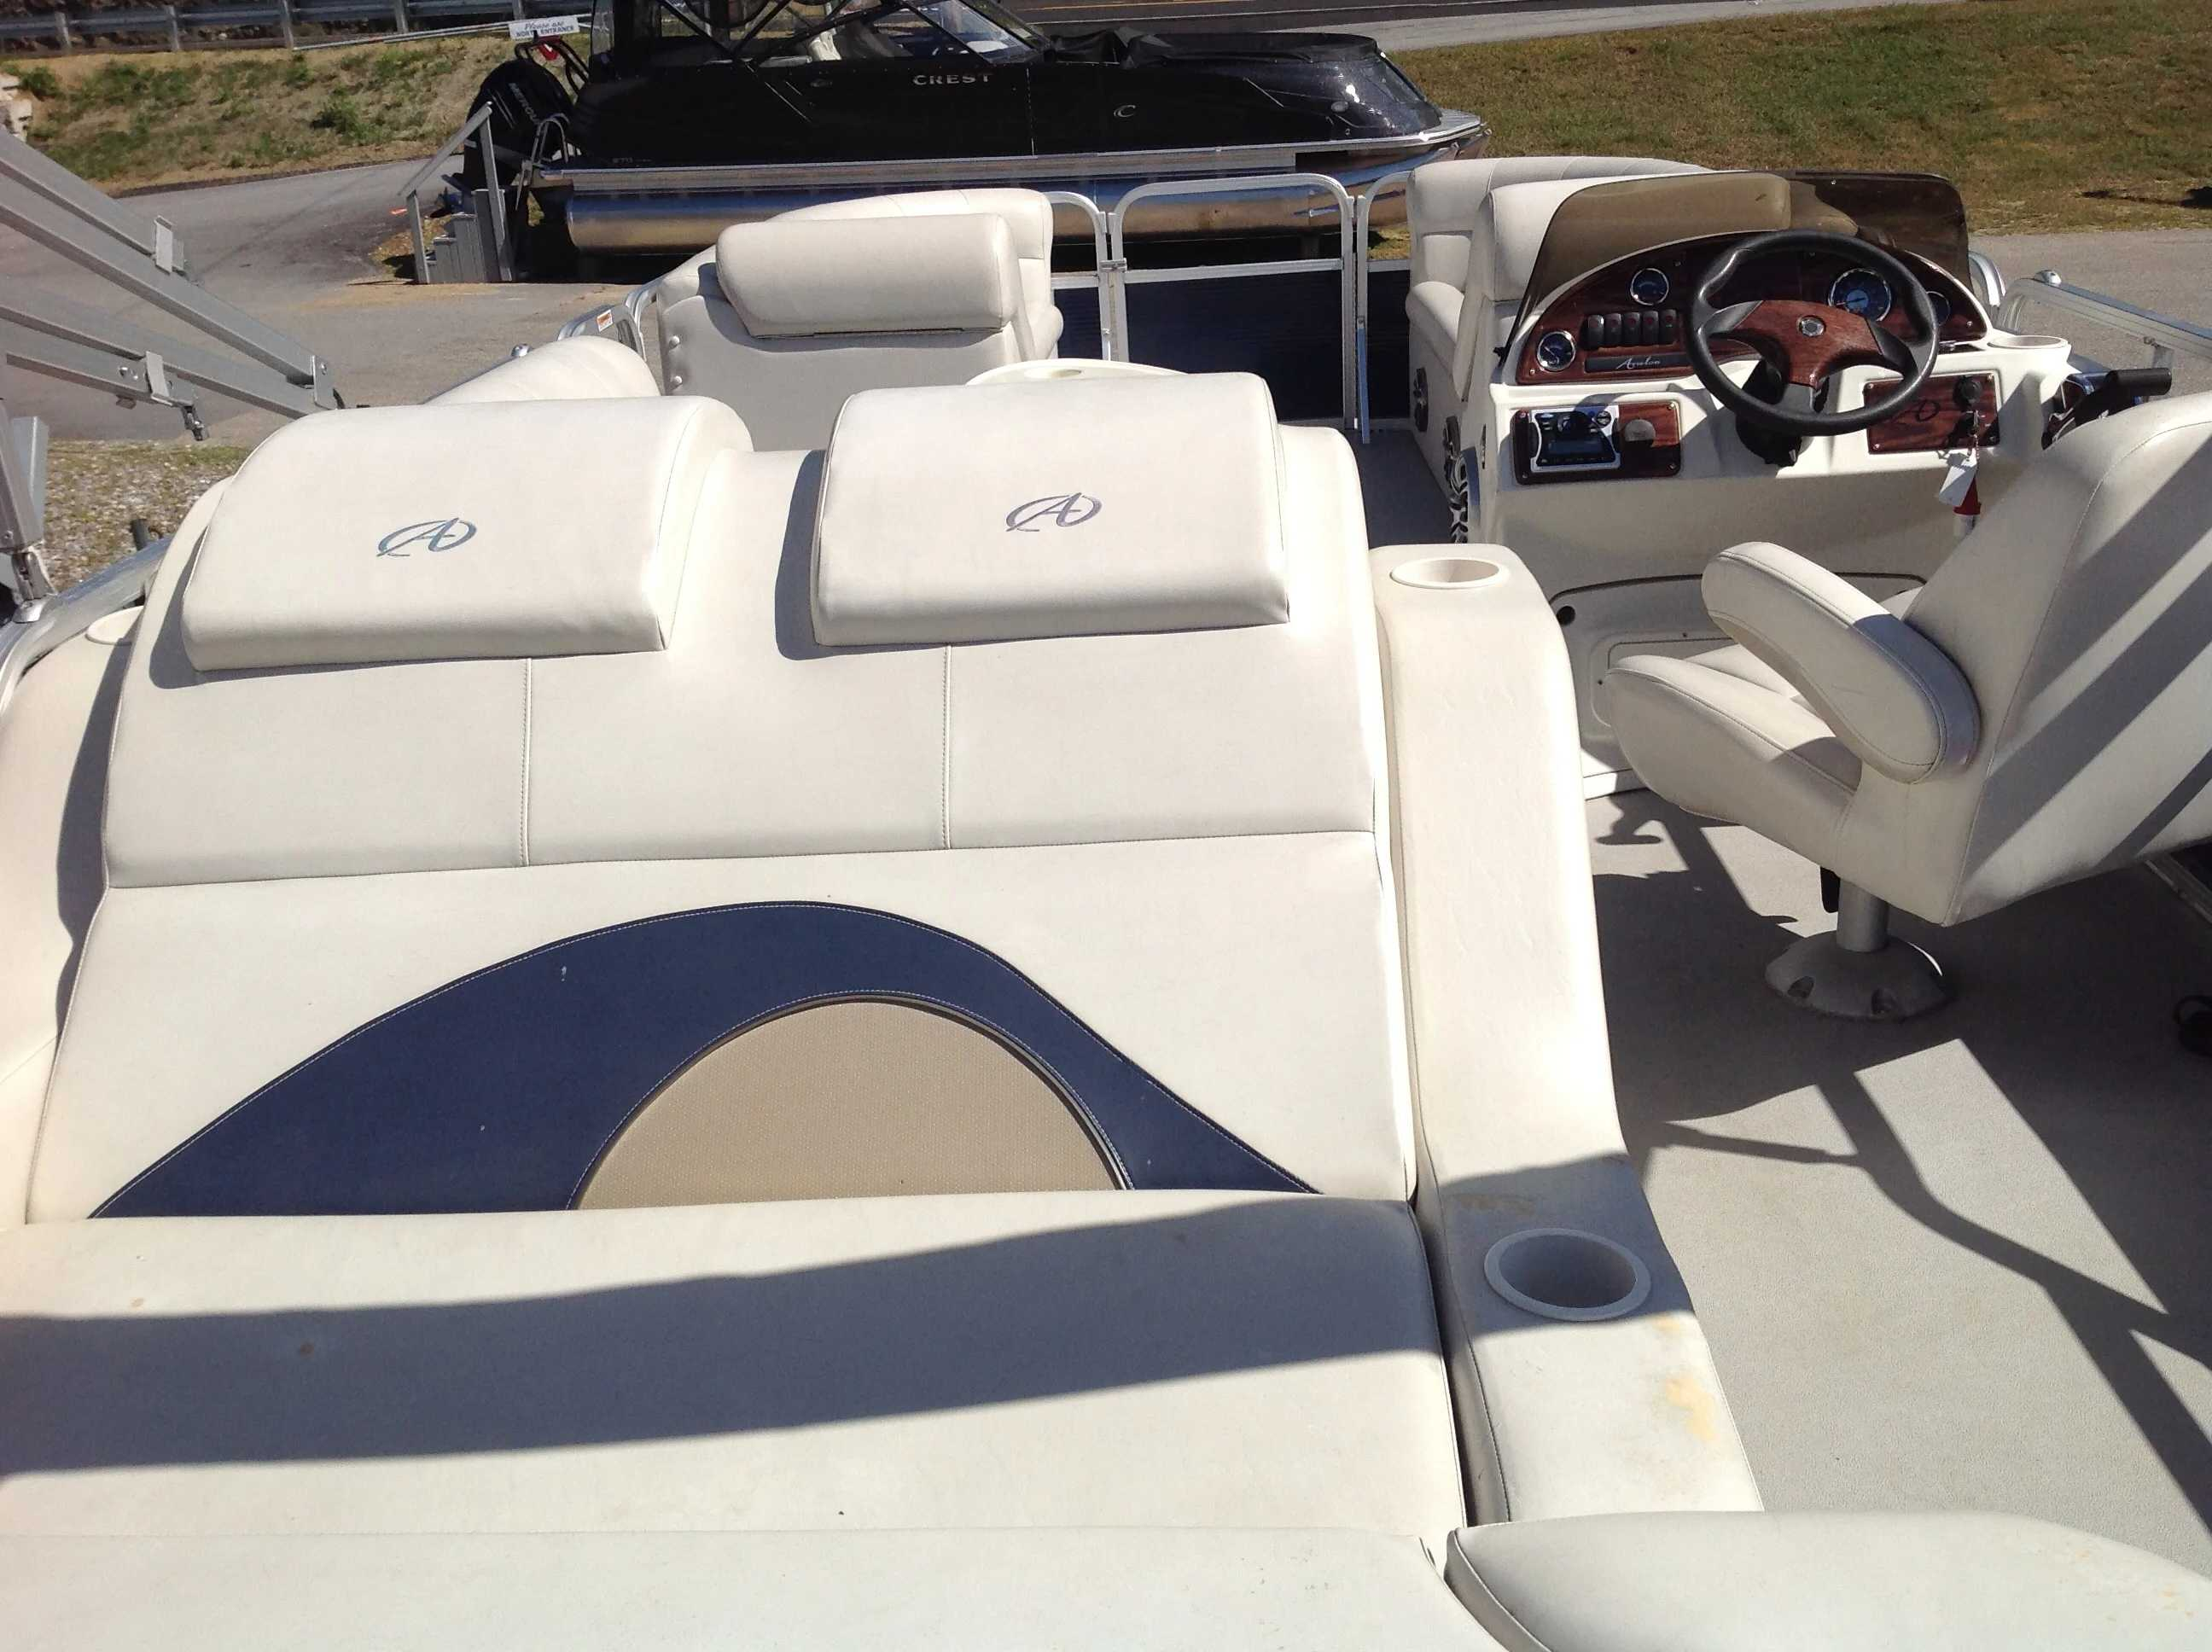 2012 Avalon boat for sale, model of the boat is Catalina Drl 2485 & Image # 11 of 14